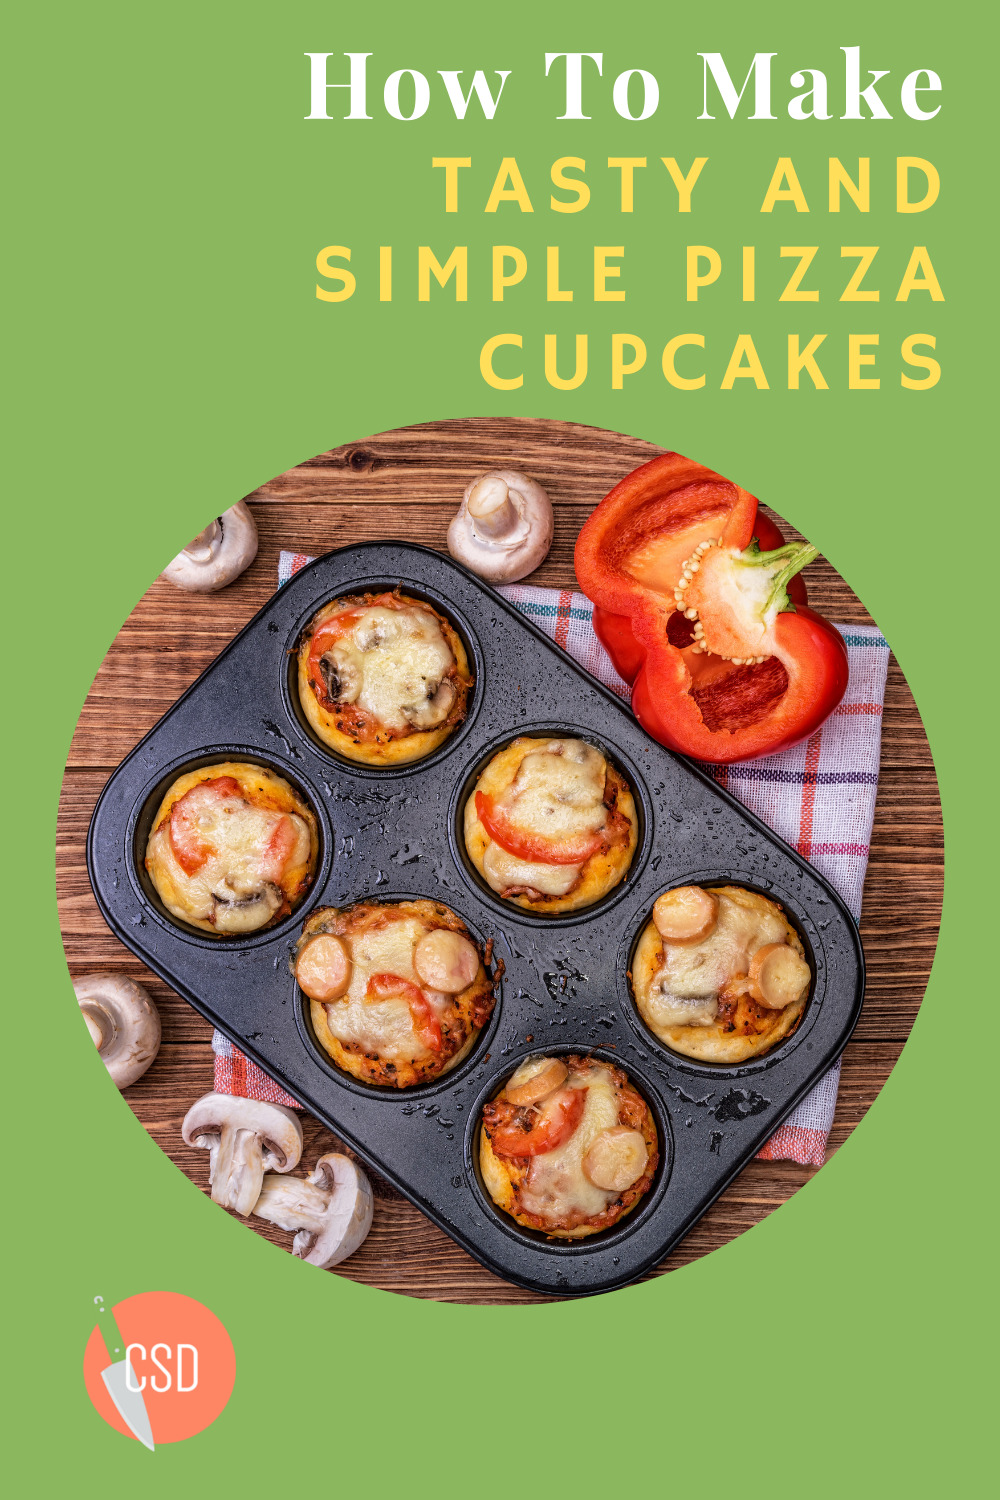 Cutsidedown.com will help you wow your dinner guests with amazing and easy recipes. Find whatever your palette desires with tons of ideas to choose from. Branch out of your comfort zone with this simple and delicious cheesy pizza cupcake recipe!